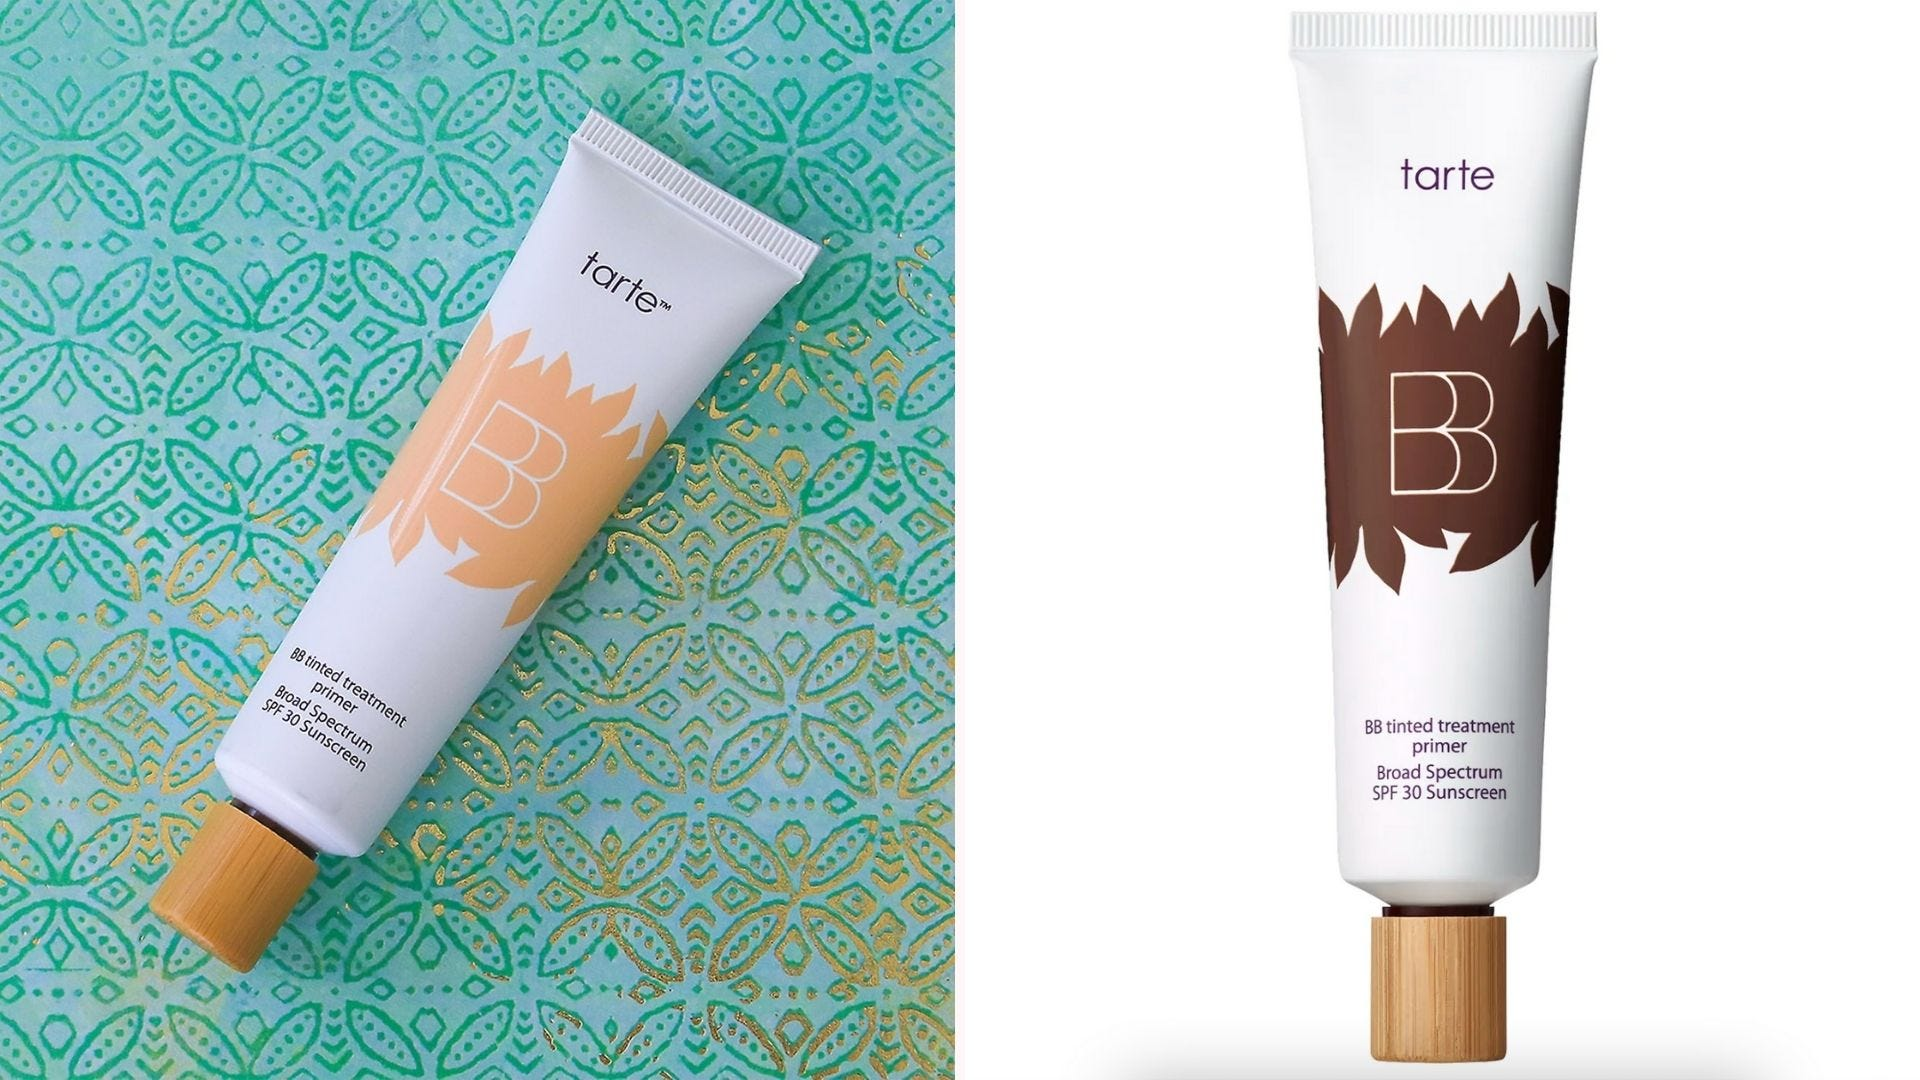 On the left, a bottle of Tarte Tinted Treatment Primer on a turquoise background, and on the right, a bottle of primer on a white background.